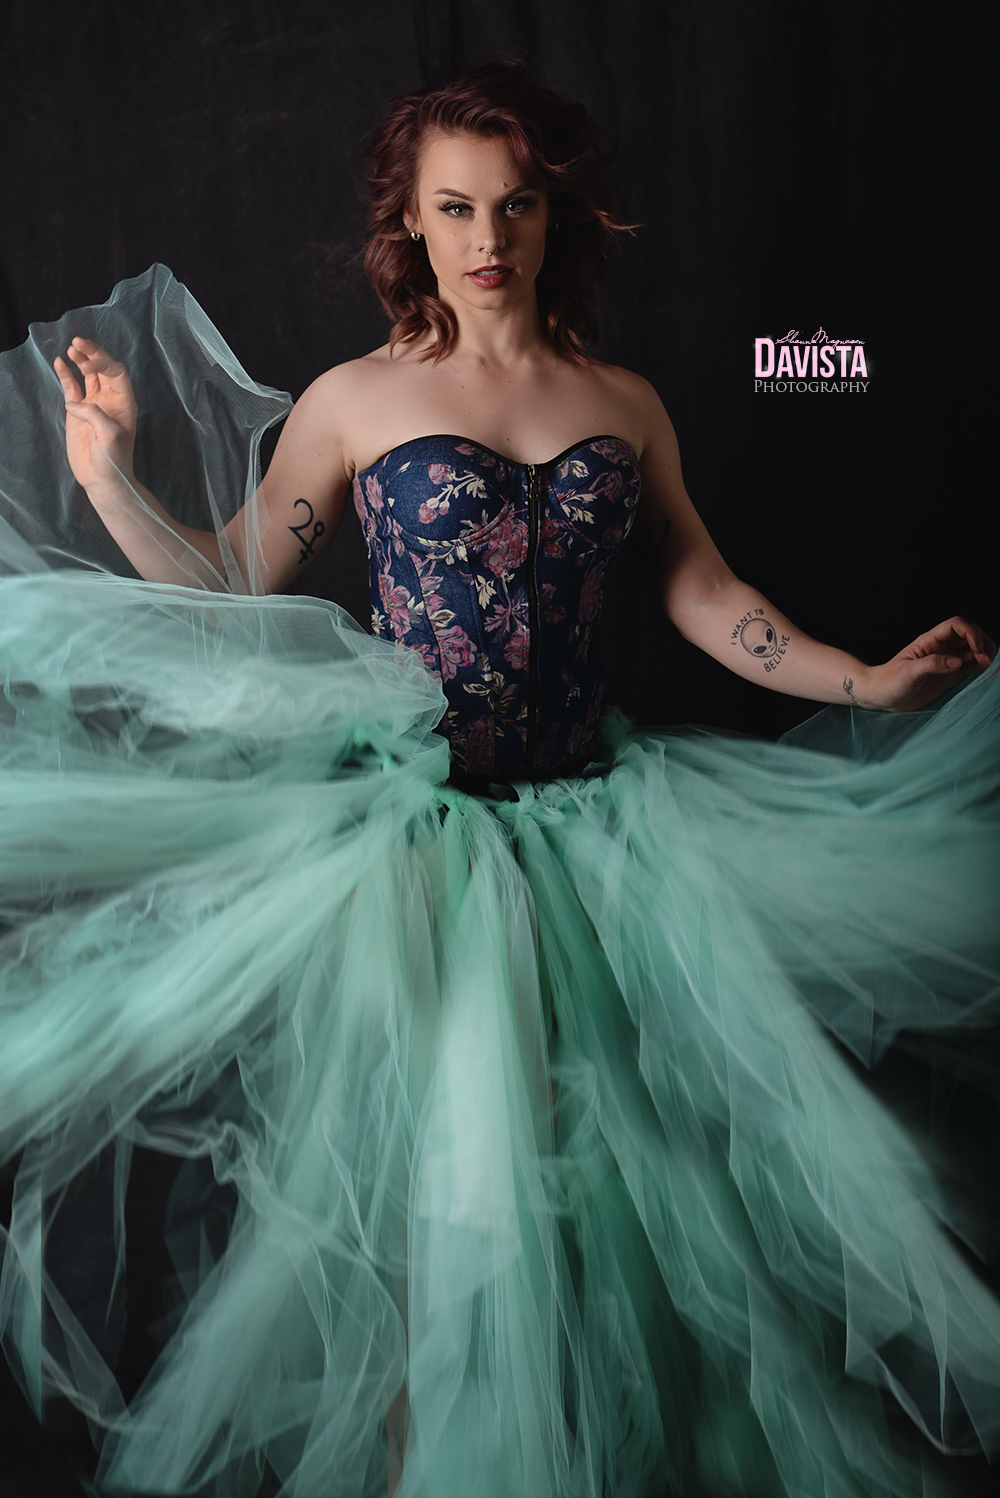 how to make a tulle skirt for photography